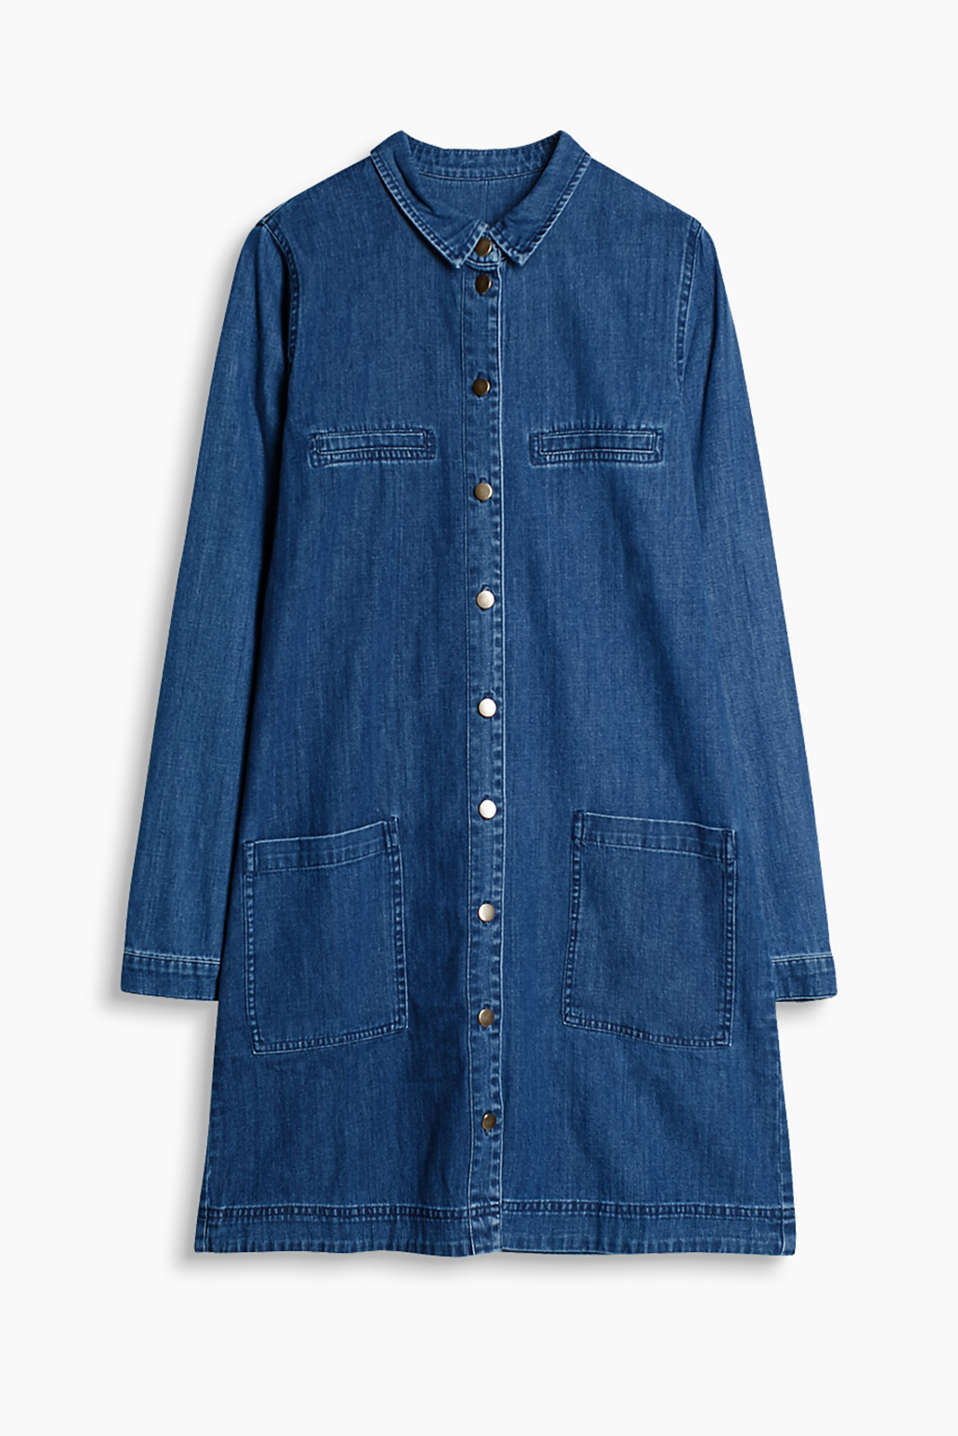 We love all-over denim: dress in a slightly flared shirt blouse style